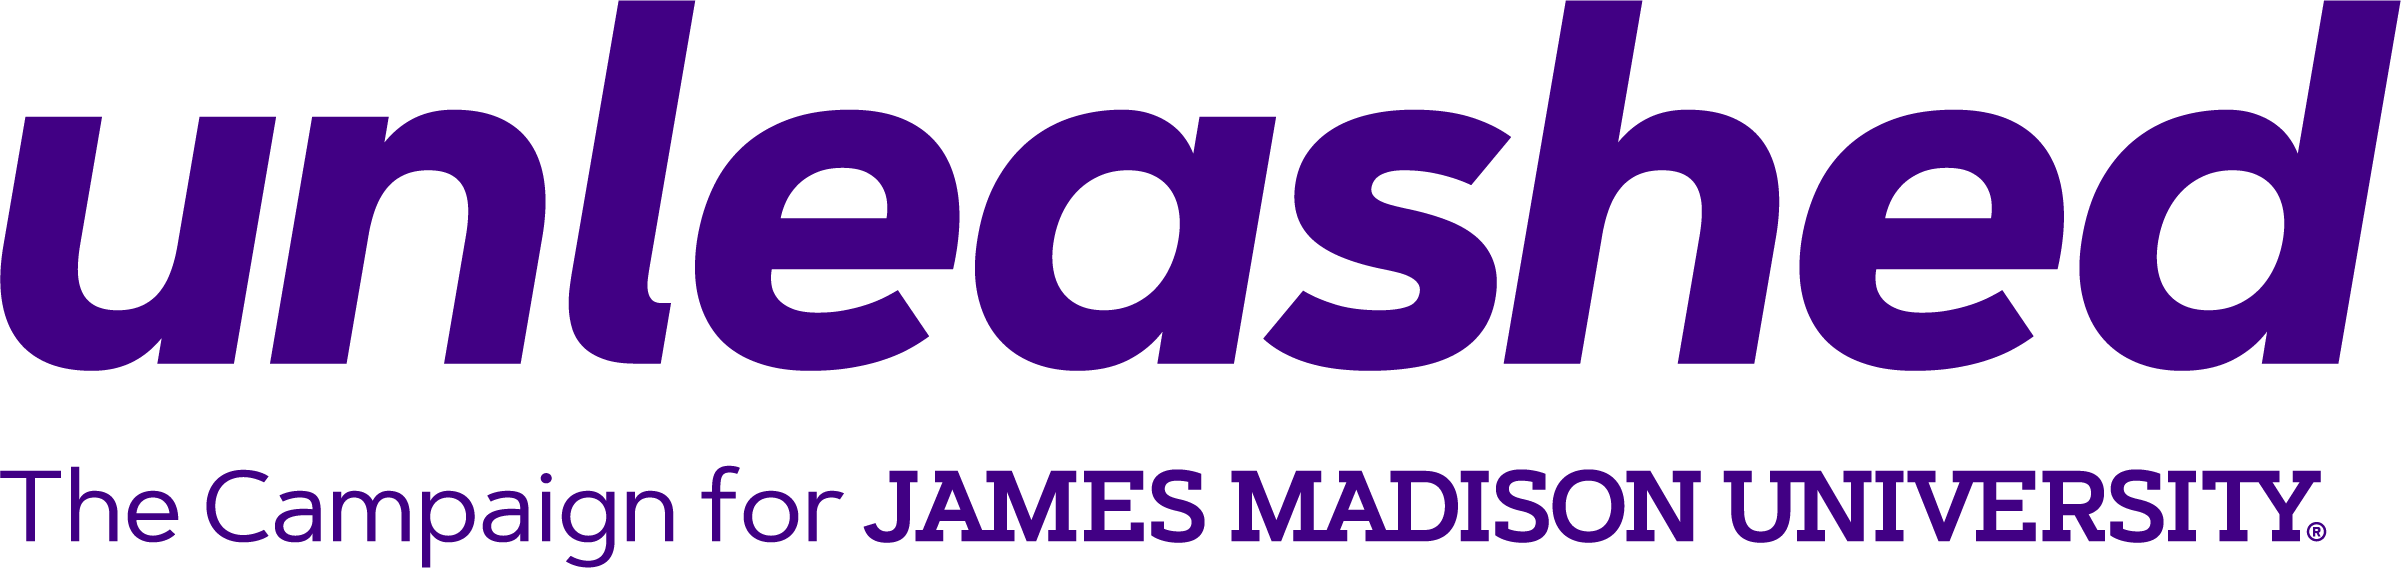 unleashed_logo_purple_RBG.png